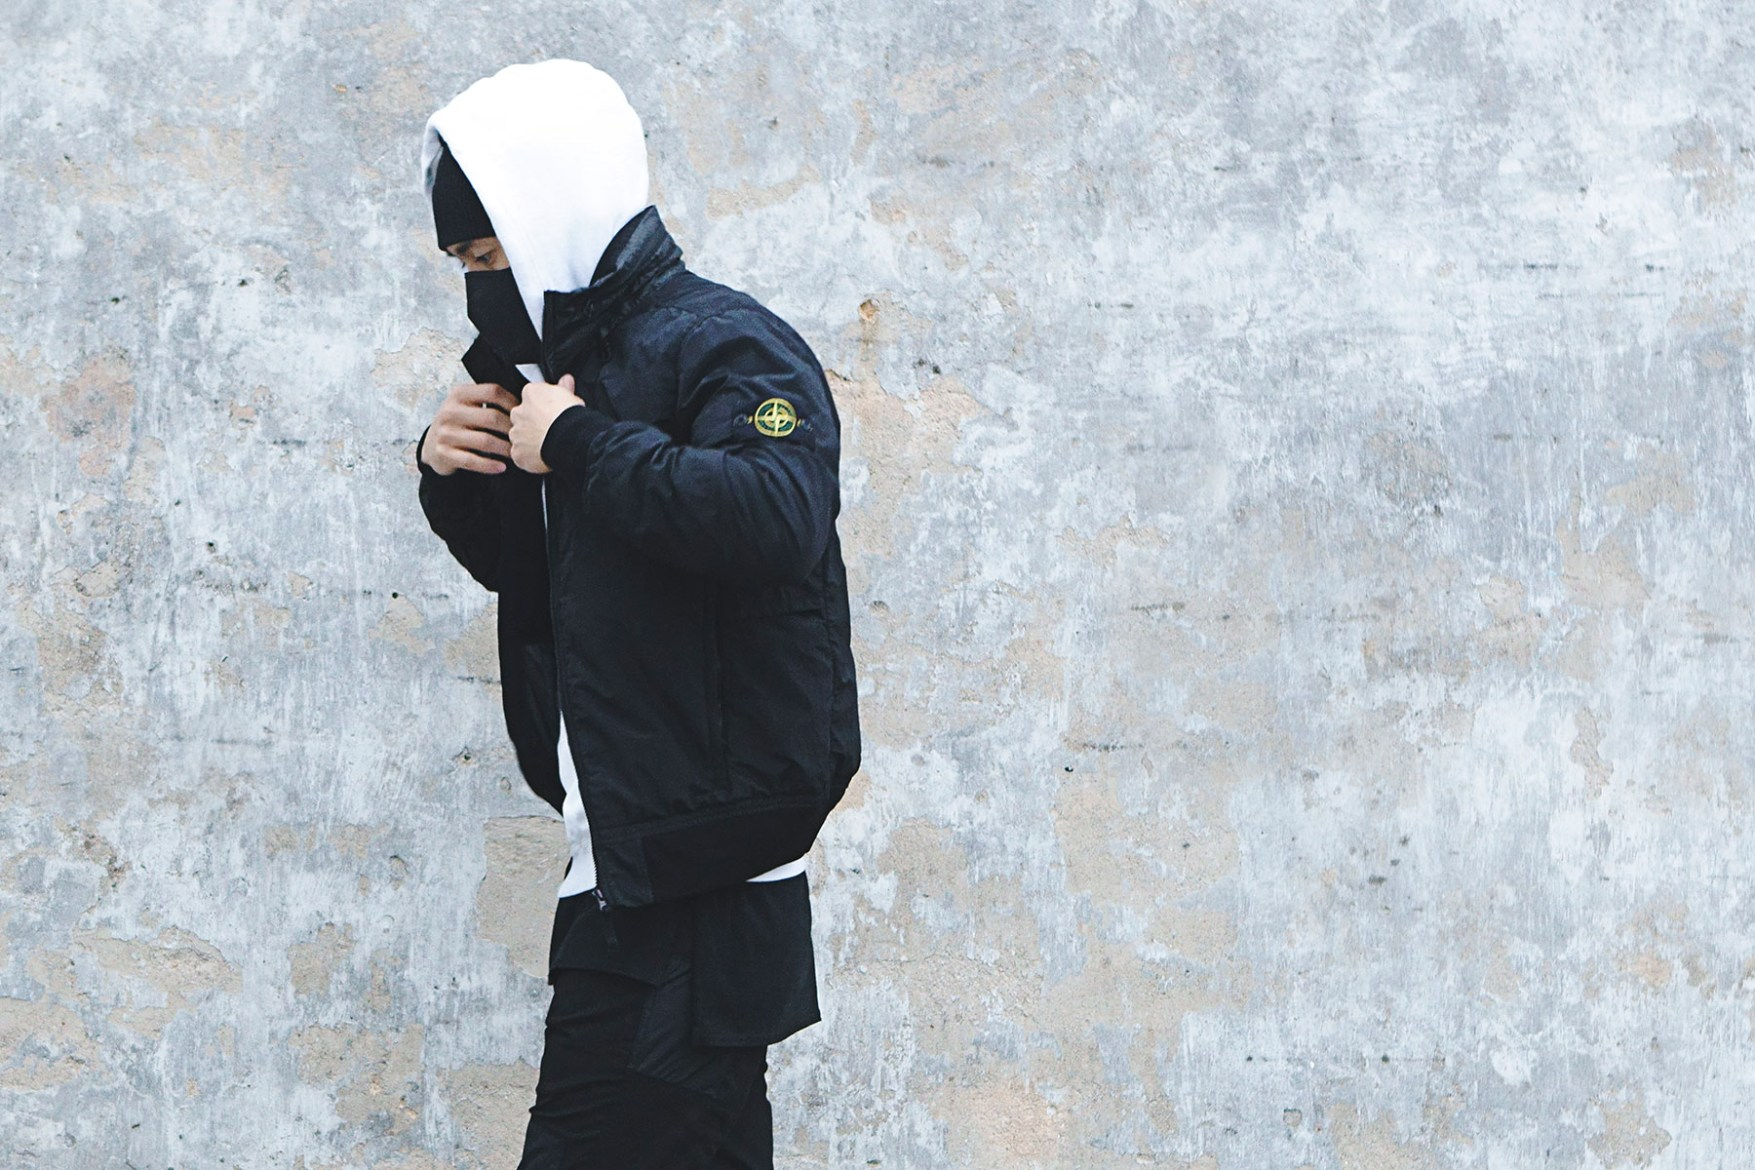 Stone island 2016 spring summer new arrivals hypebeast for Tile fashion 2016